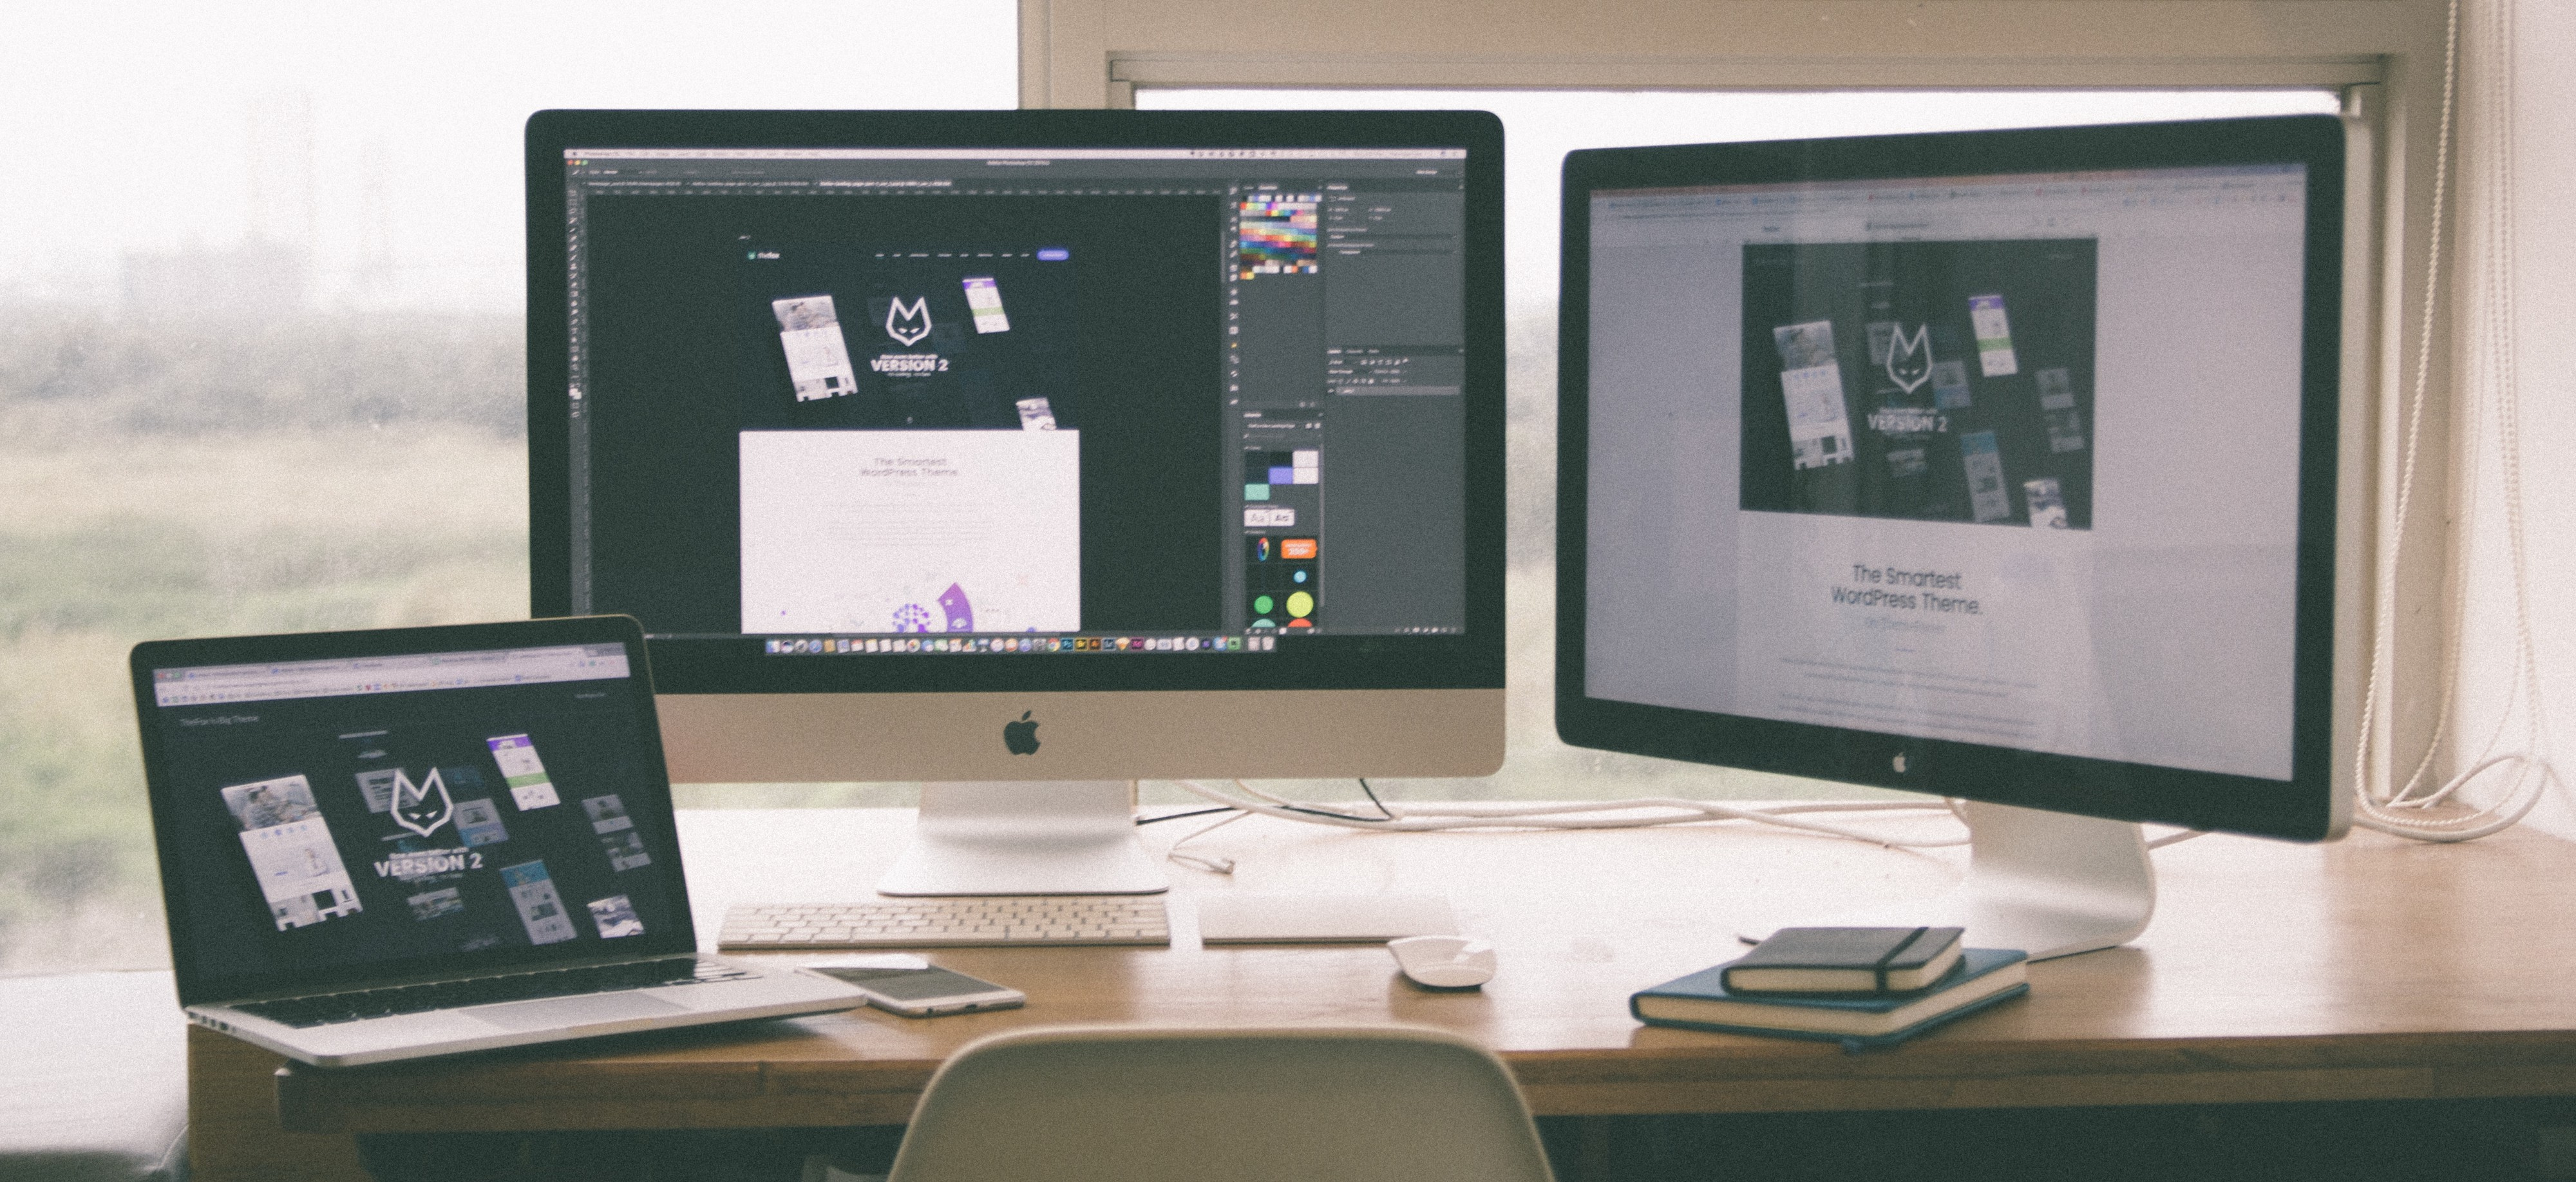 7 steps to become a UI/UX designer - Nicole's Blog